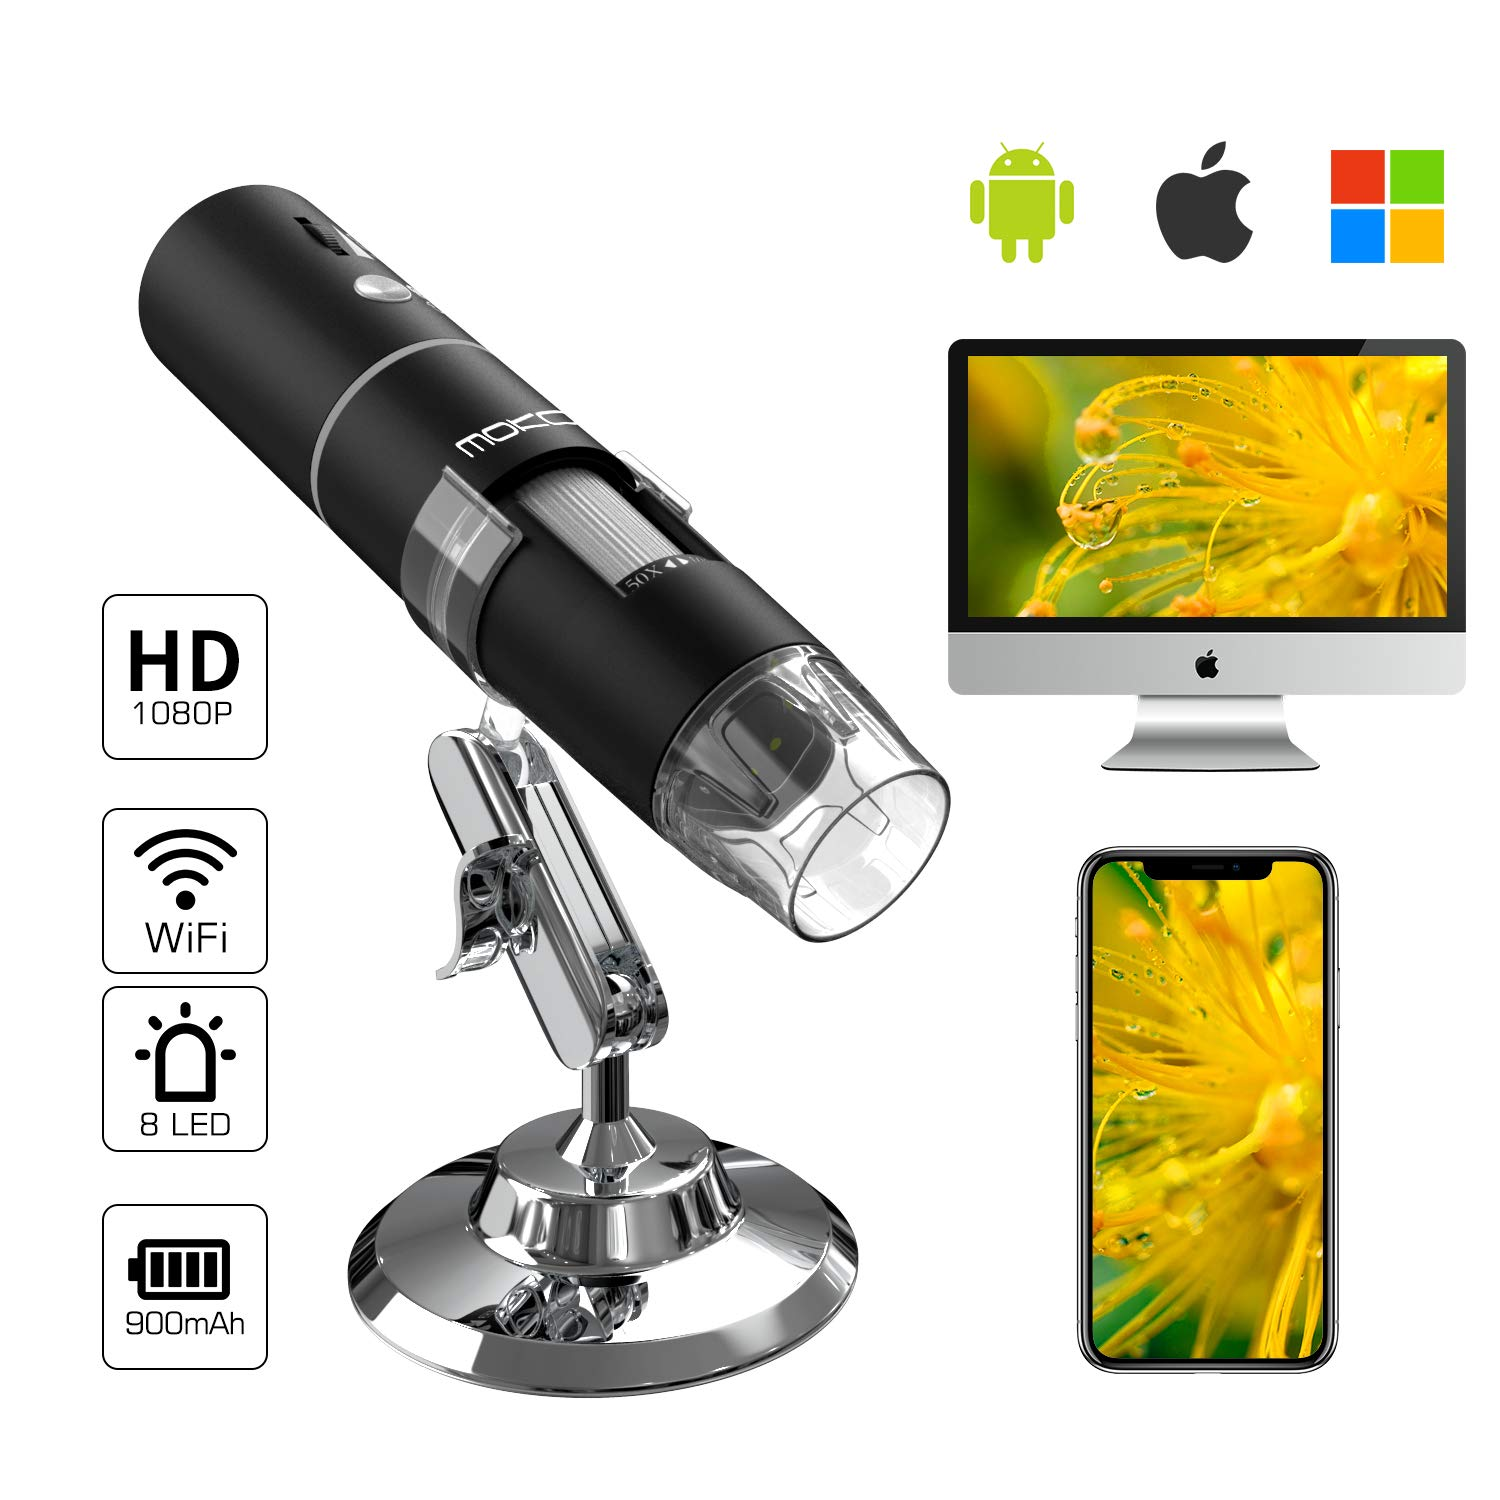 MoKo WiFi USB Digital Microscope, 1080P HD 2MP Camera, 8 LED Mini Pocket Handheld Wireless Endoscope 50x to 1000x Magnification, Metal Stand Compatible with iPhone/iPad/Mac/Window/Android/iOS - Black by MoKo